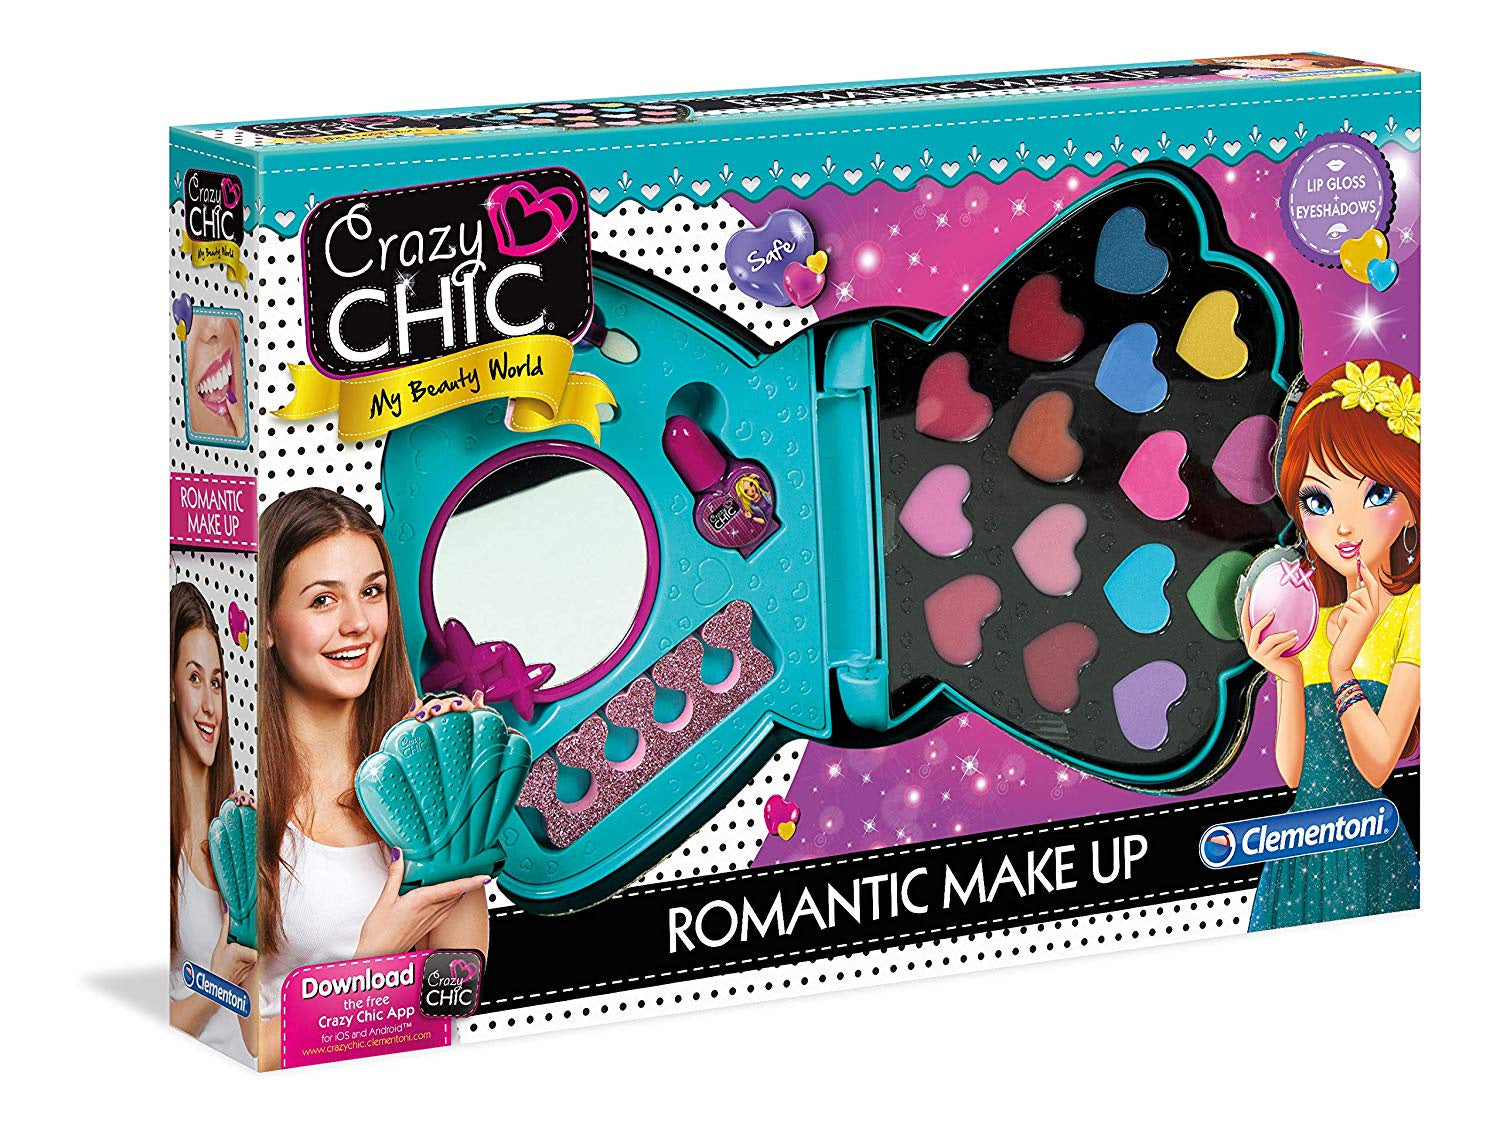 Clementoni Crazy Chic Romantic Make Up Playset